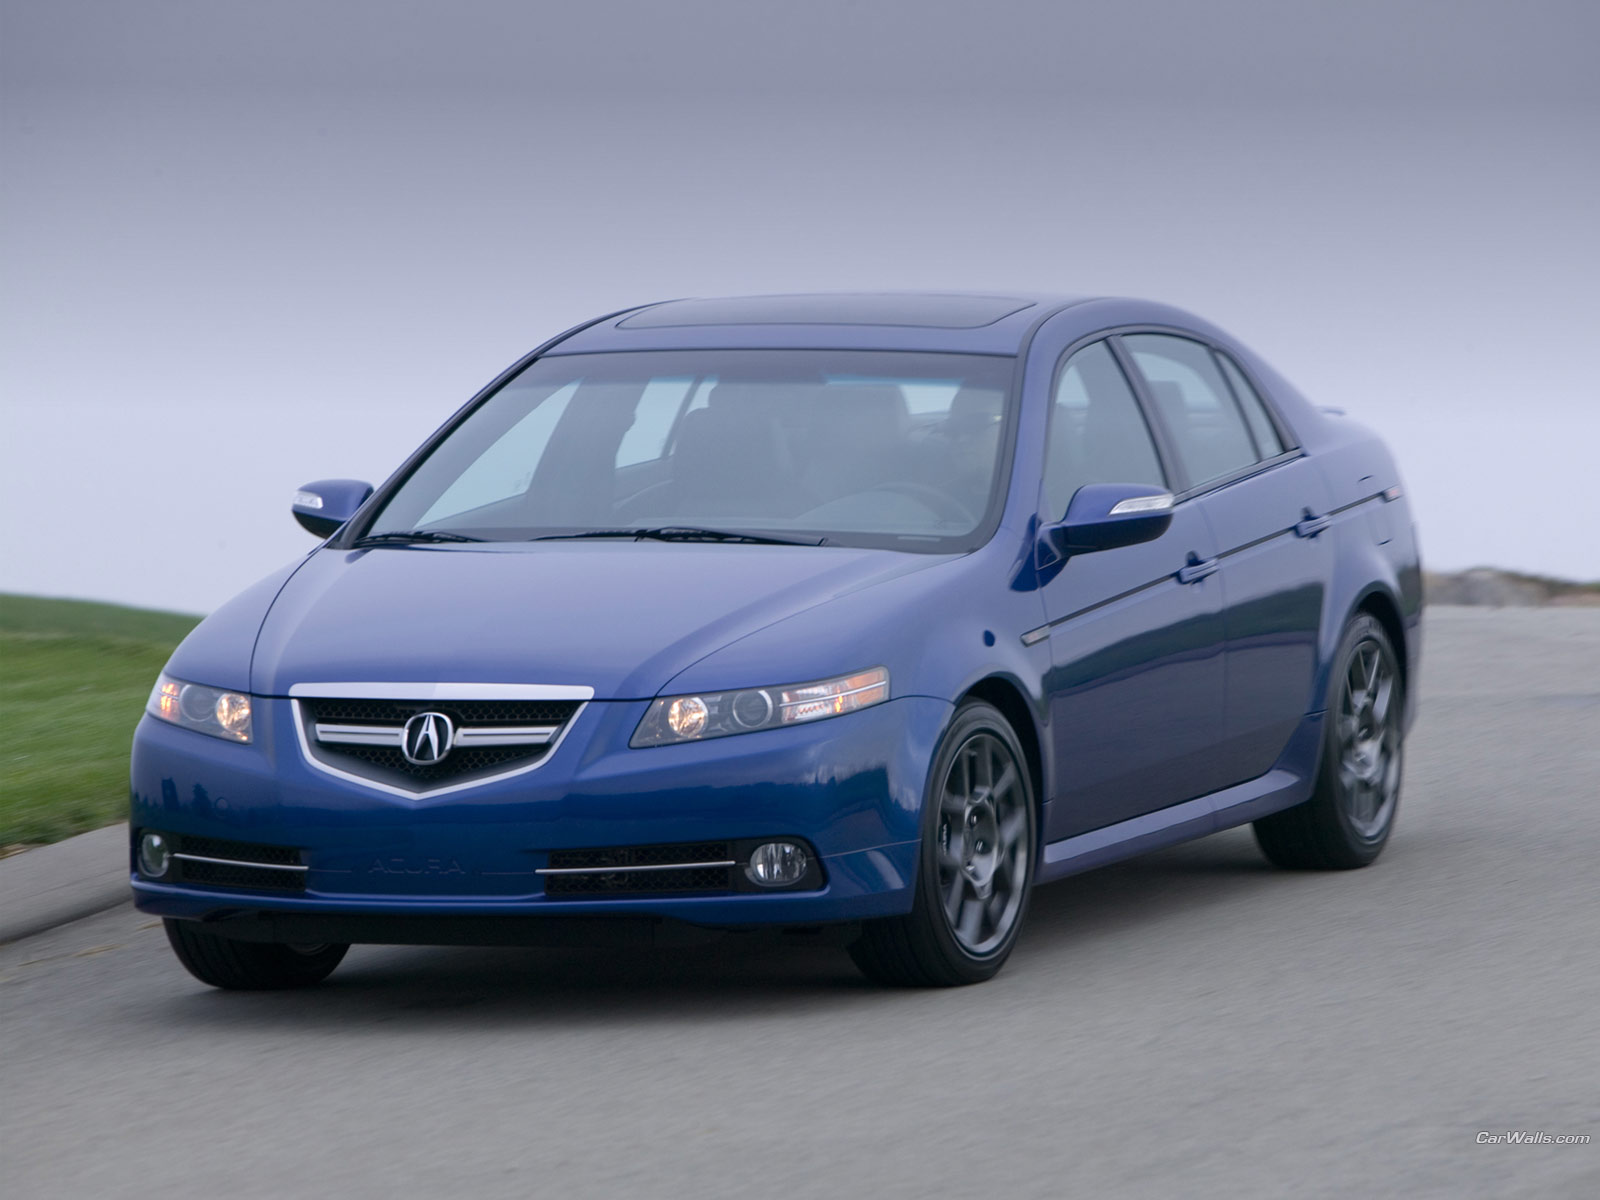 ACURA CAR WALLPAPERS: Acura TL TYPE S Car Wallpapers